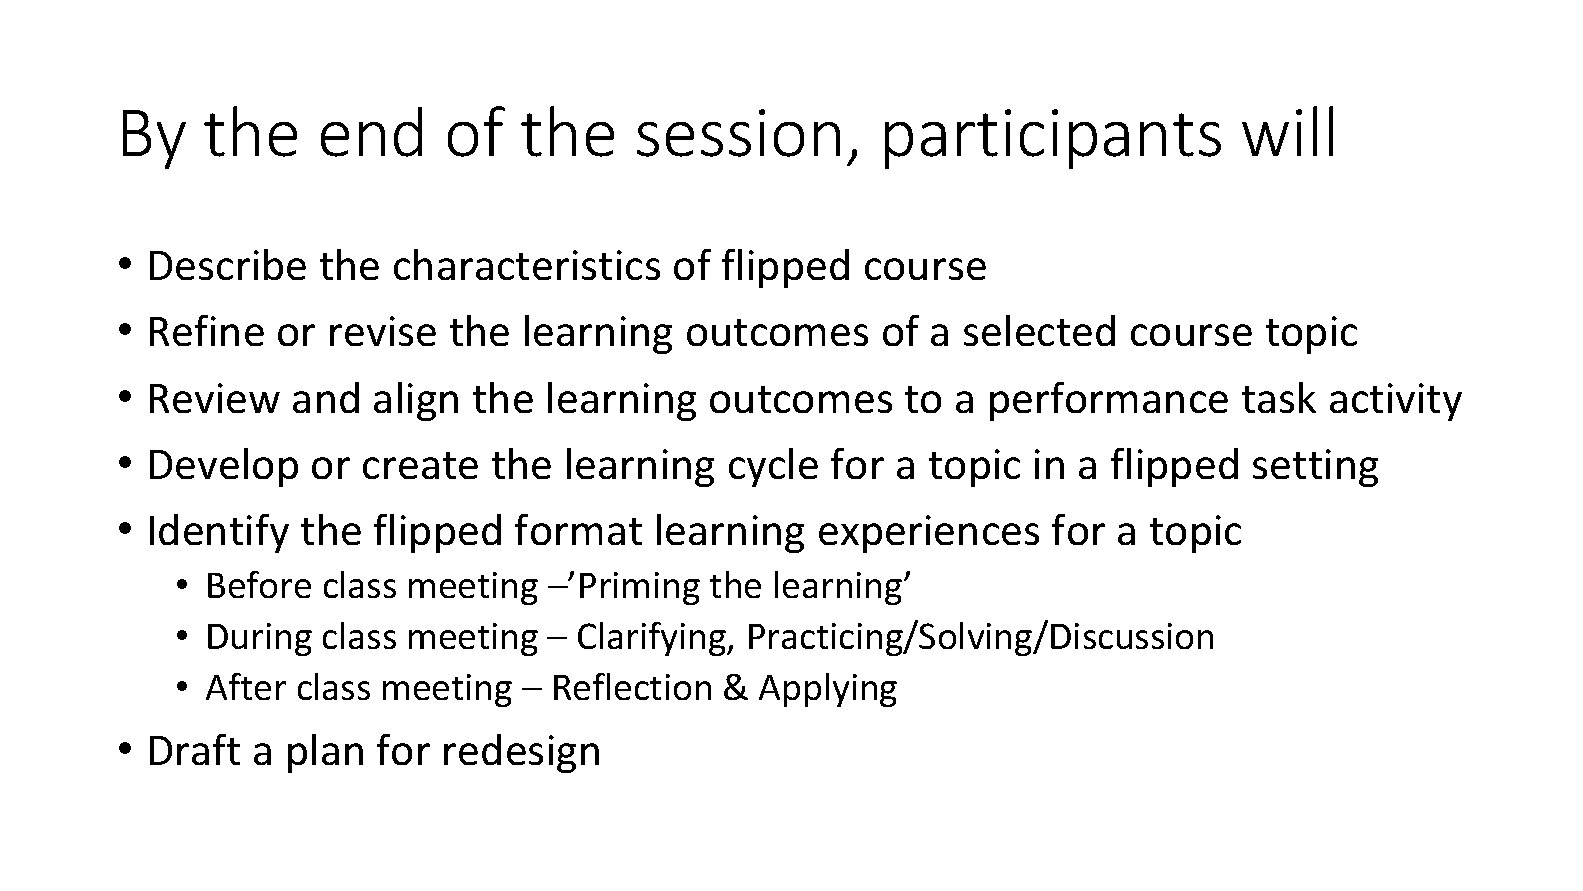 By the end of the session, participants will • Describe the characteristics of flipped